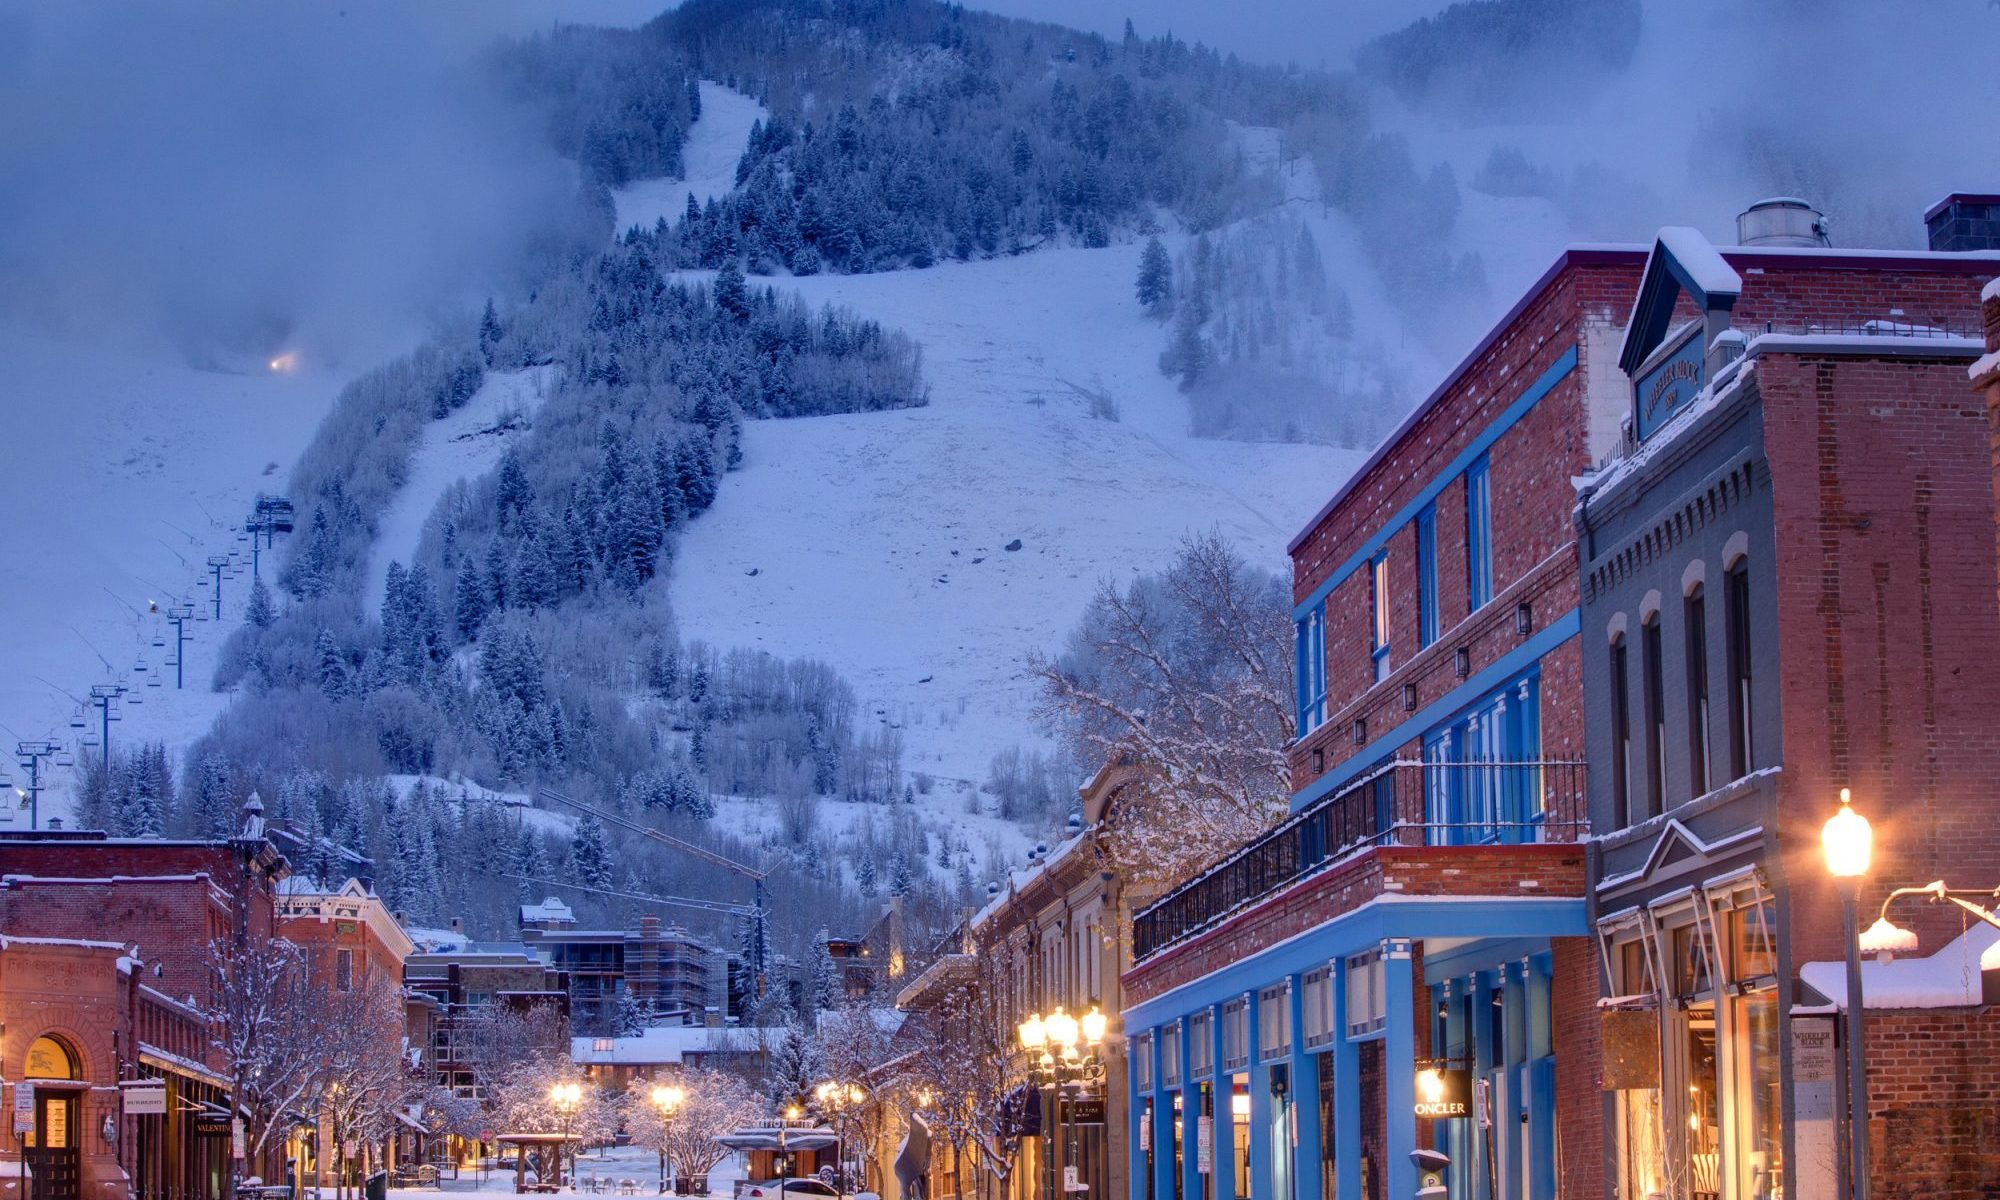 Aspen Mountain from the town of Aspen. 20 Inches of New Snow at Aspen Snowmass in the Last Seven Days.